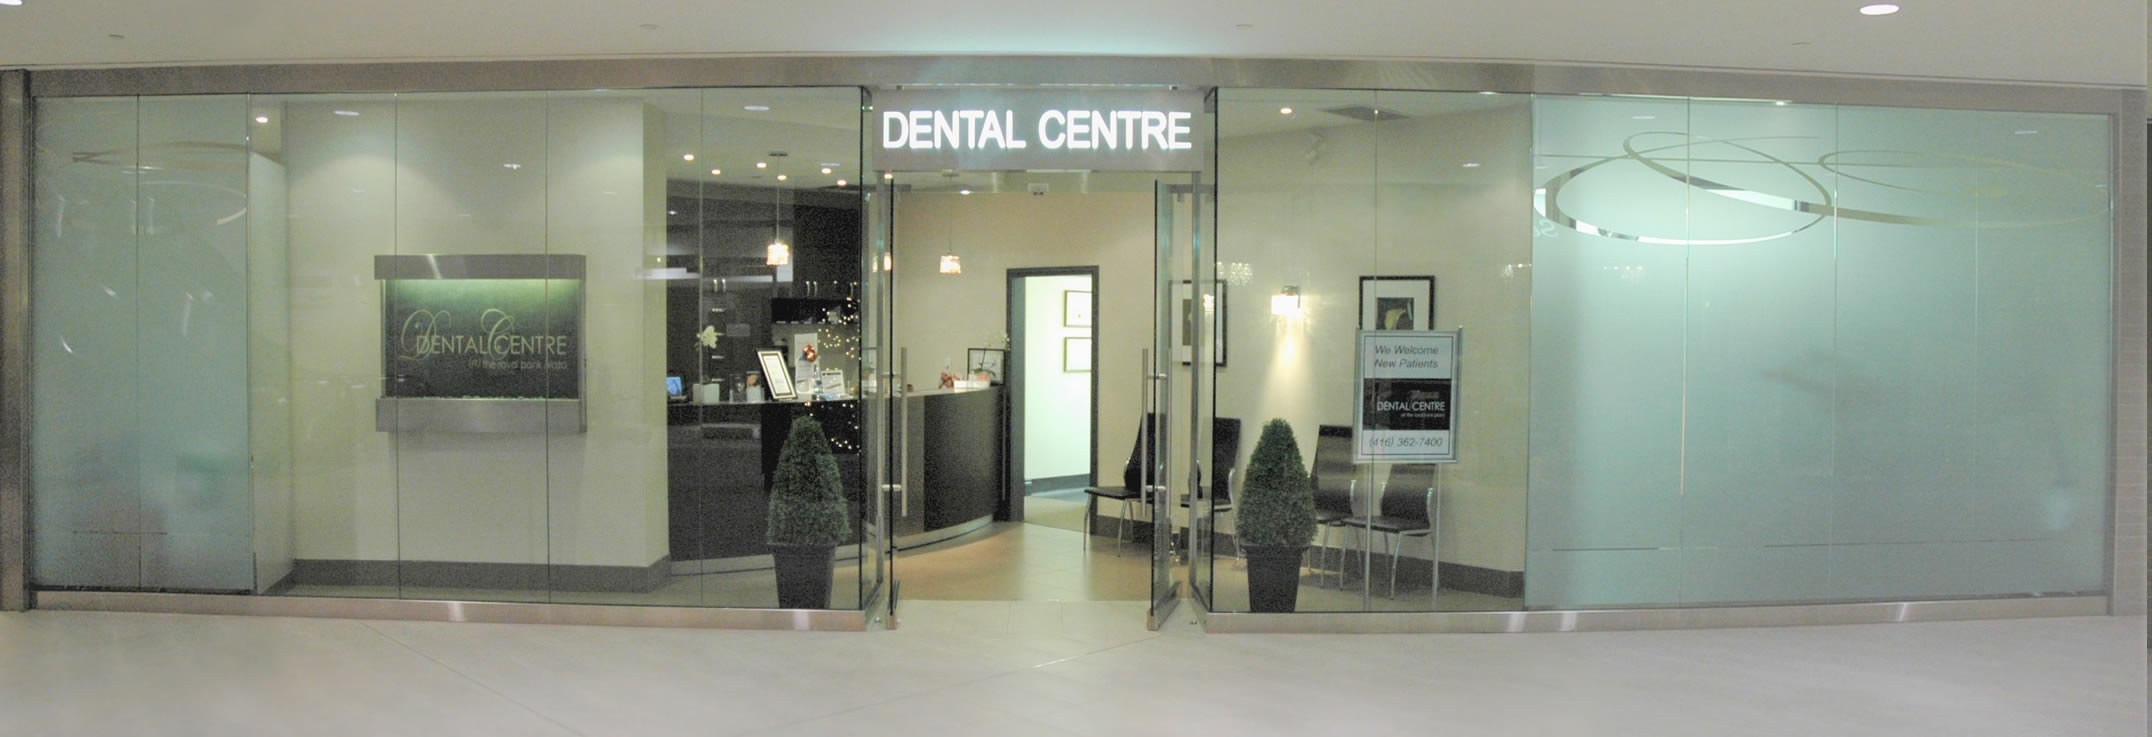 dentaloffice-header2